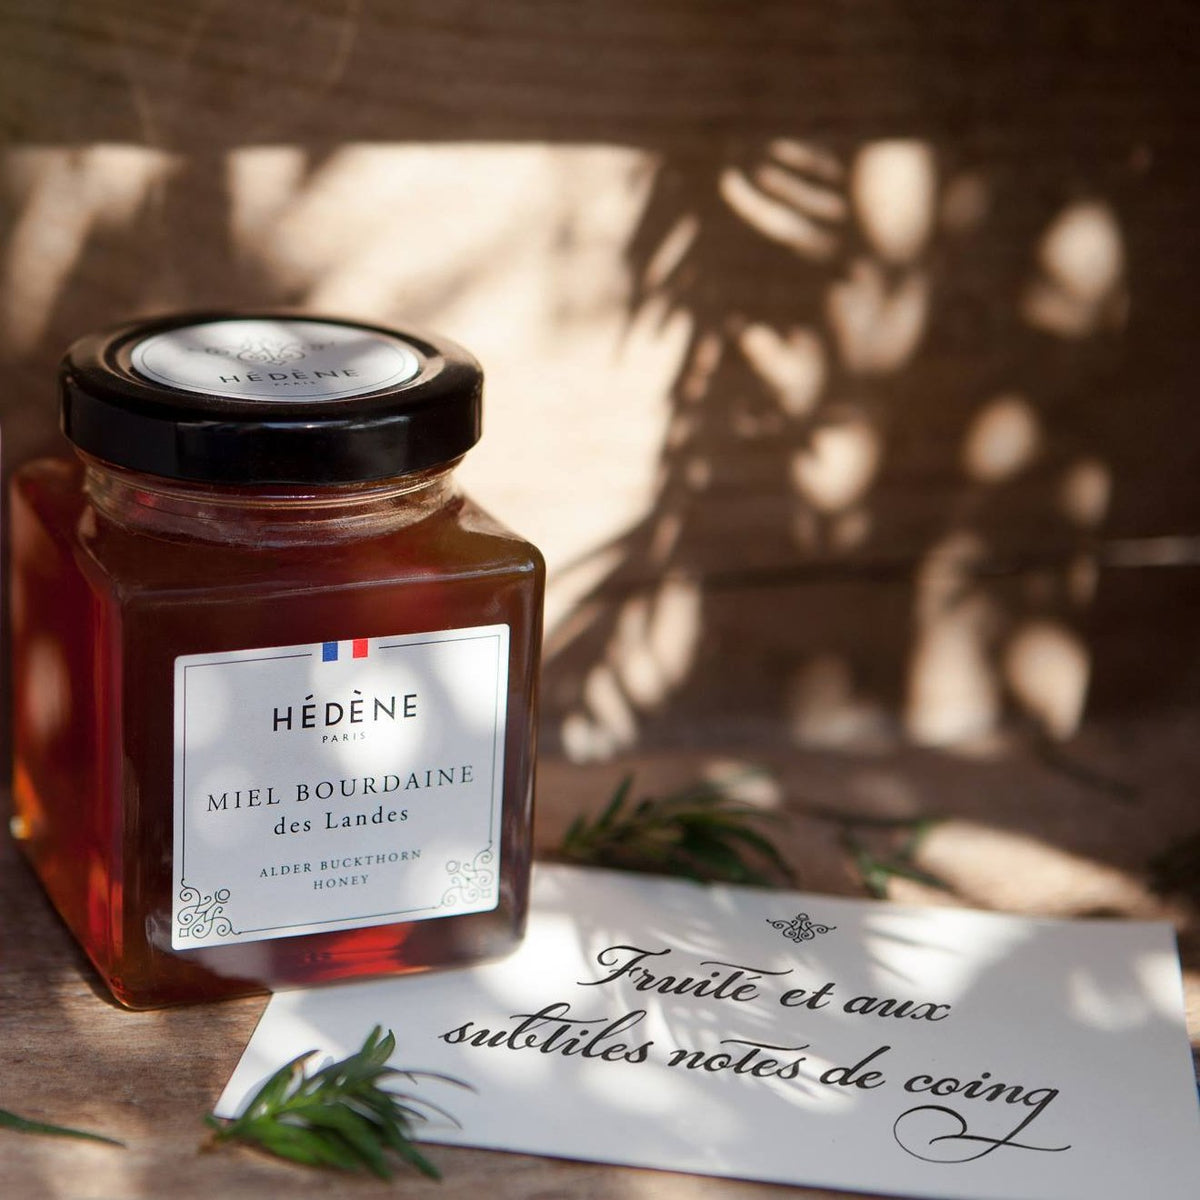 Alder buckthorn honey from Les Landes, France